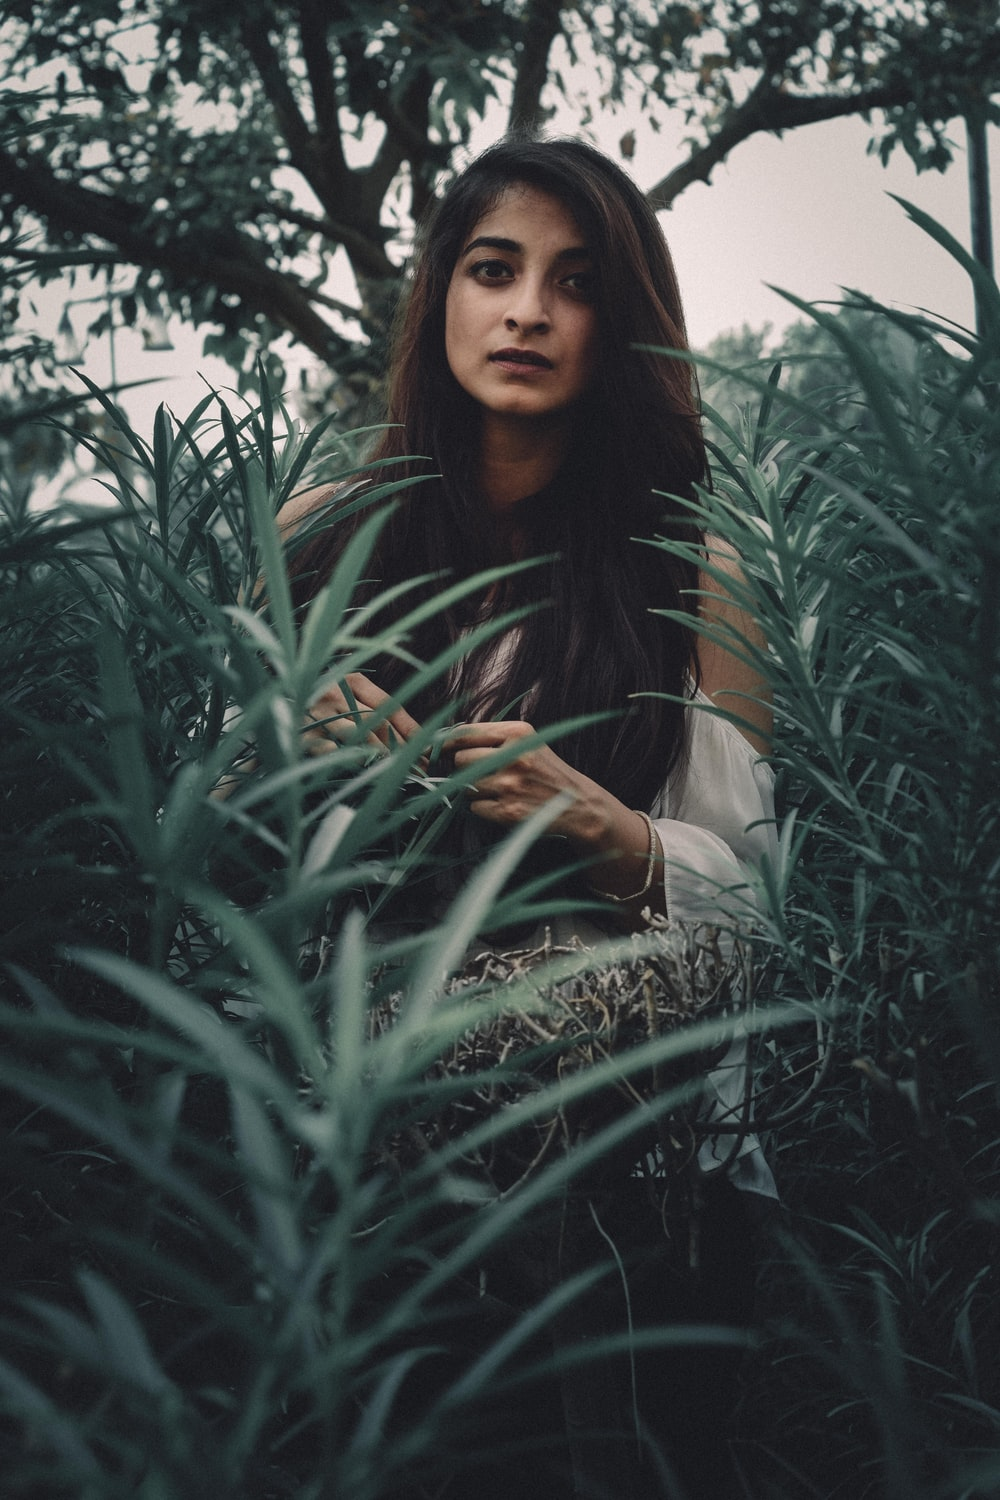 Aesthetic Girl 72 Best Free Aesthetic Girl Woman And Person Photos On Unsplash Feel free to share with your friends and family. aesthetic girl 72 best free aesthetic